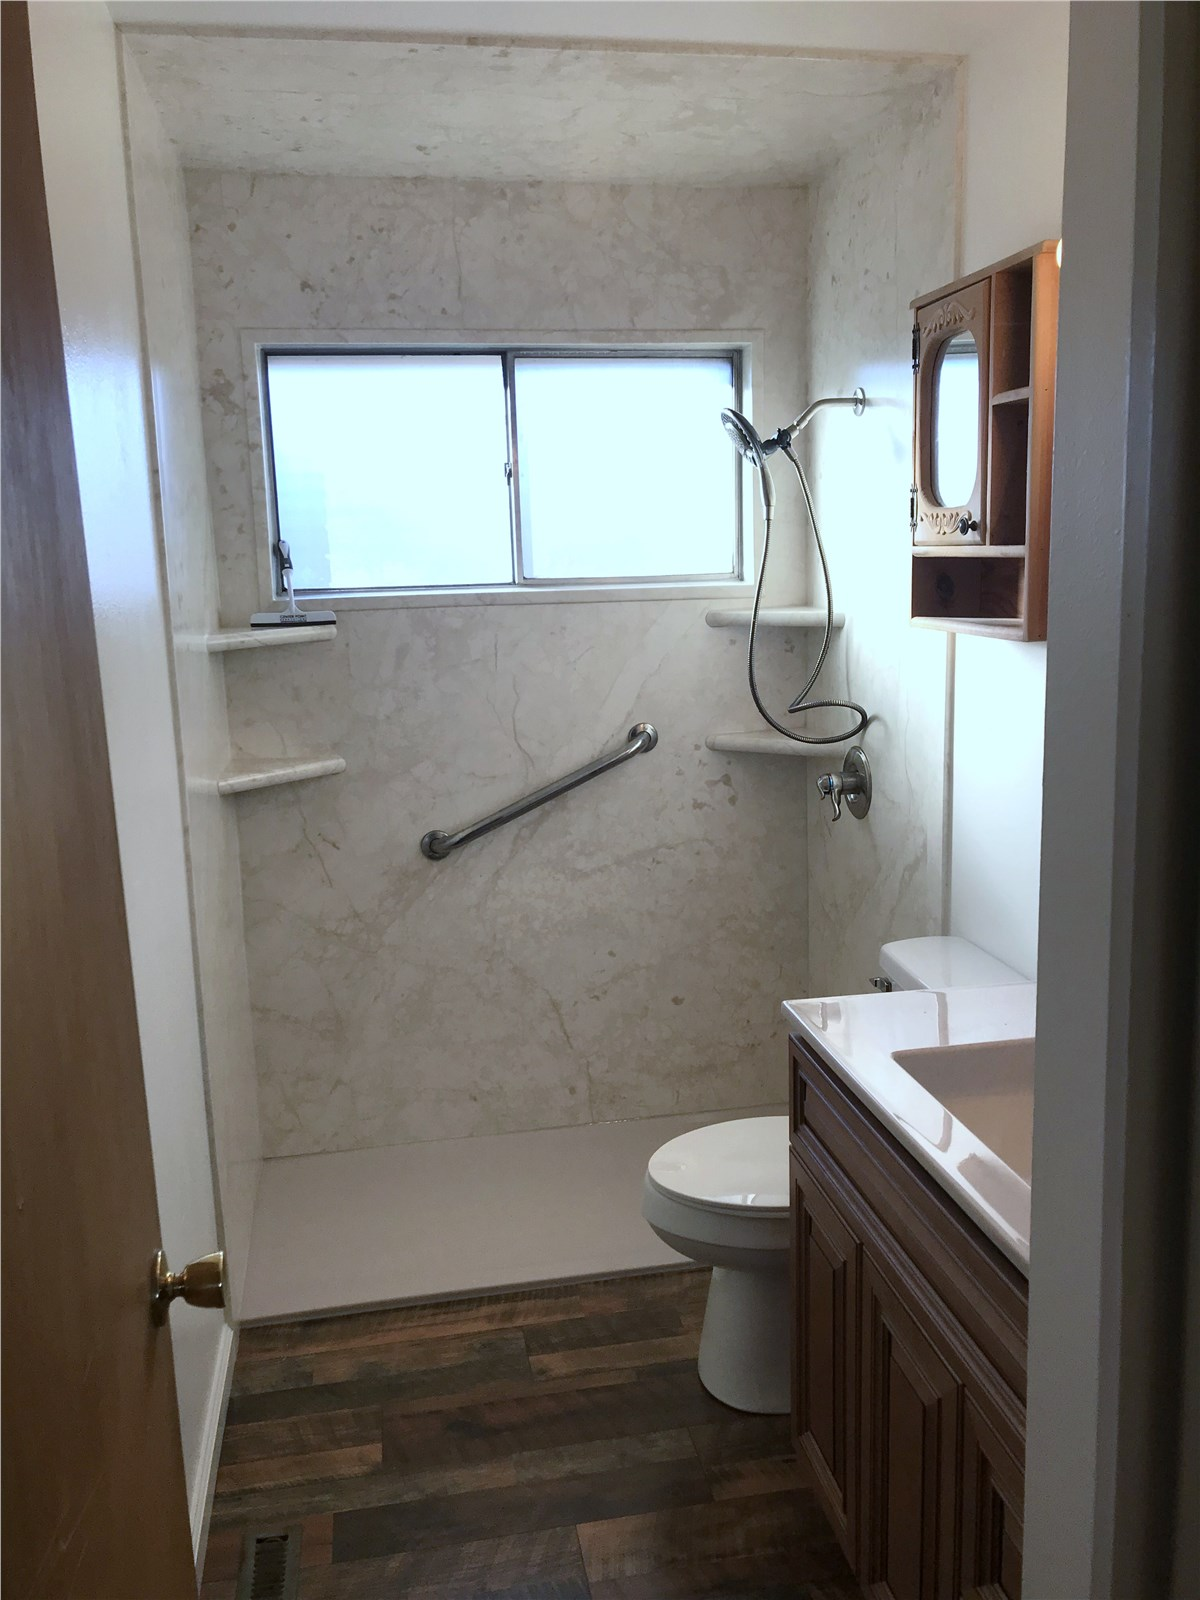 Bath remodel in colorado springs colorado springs bath - Bathroom remodel colorado springs ...